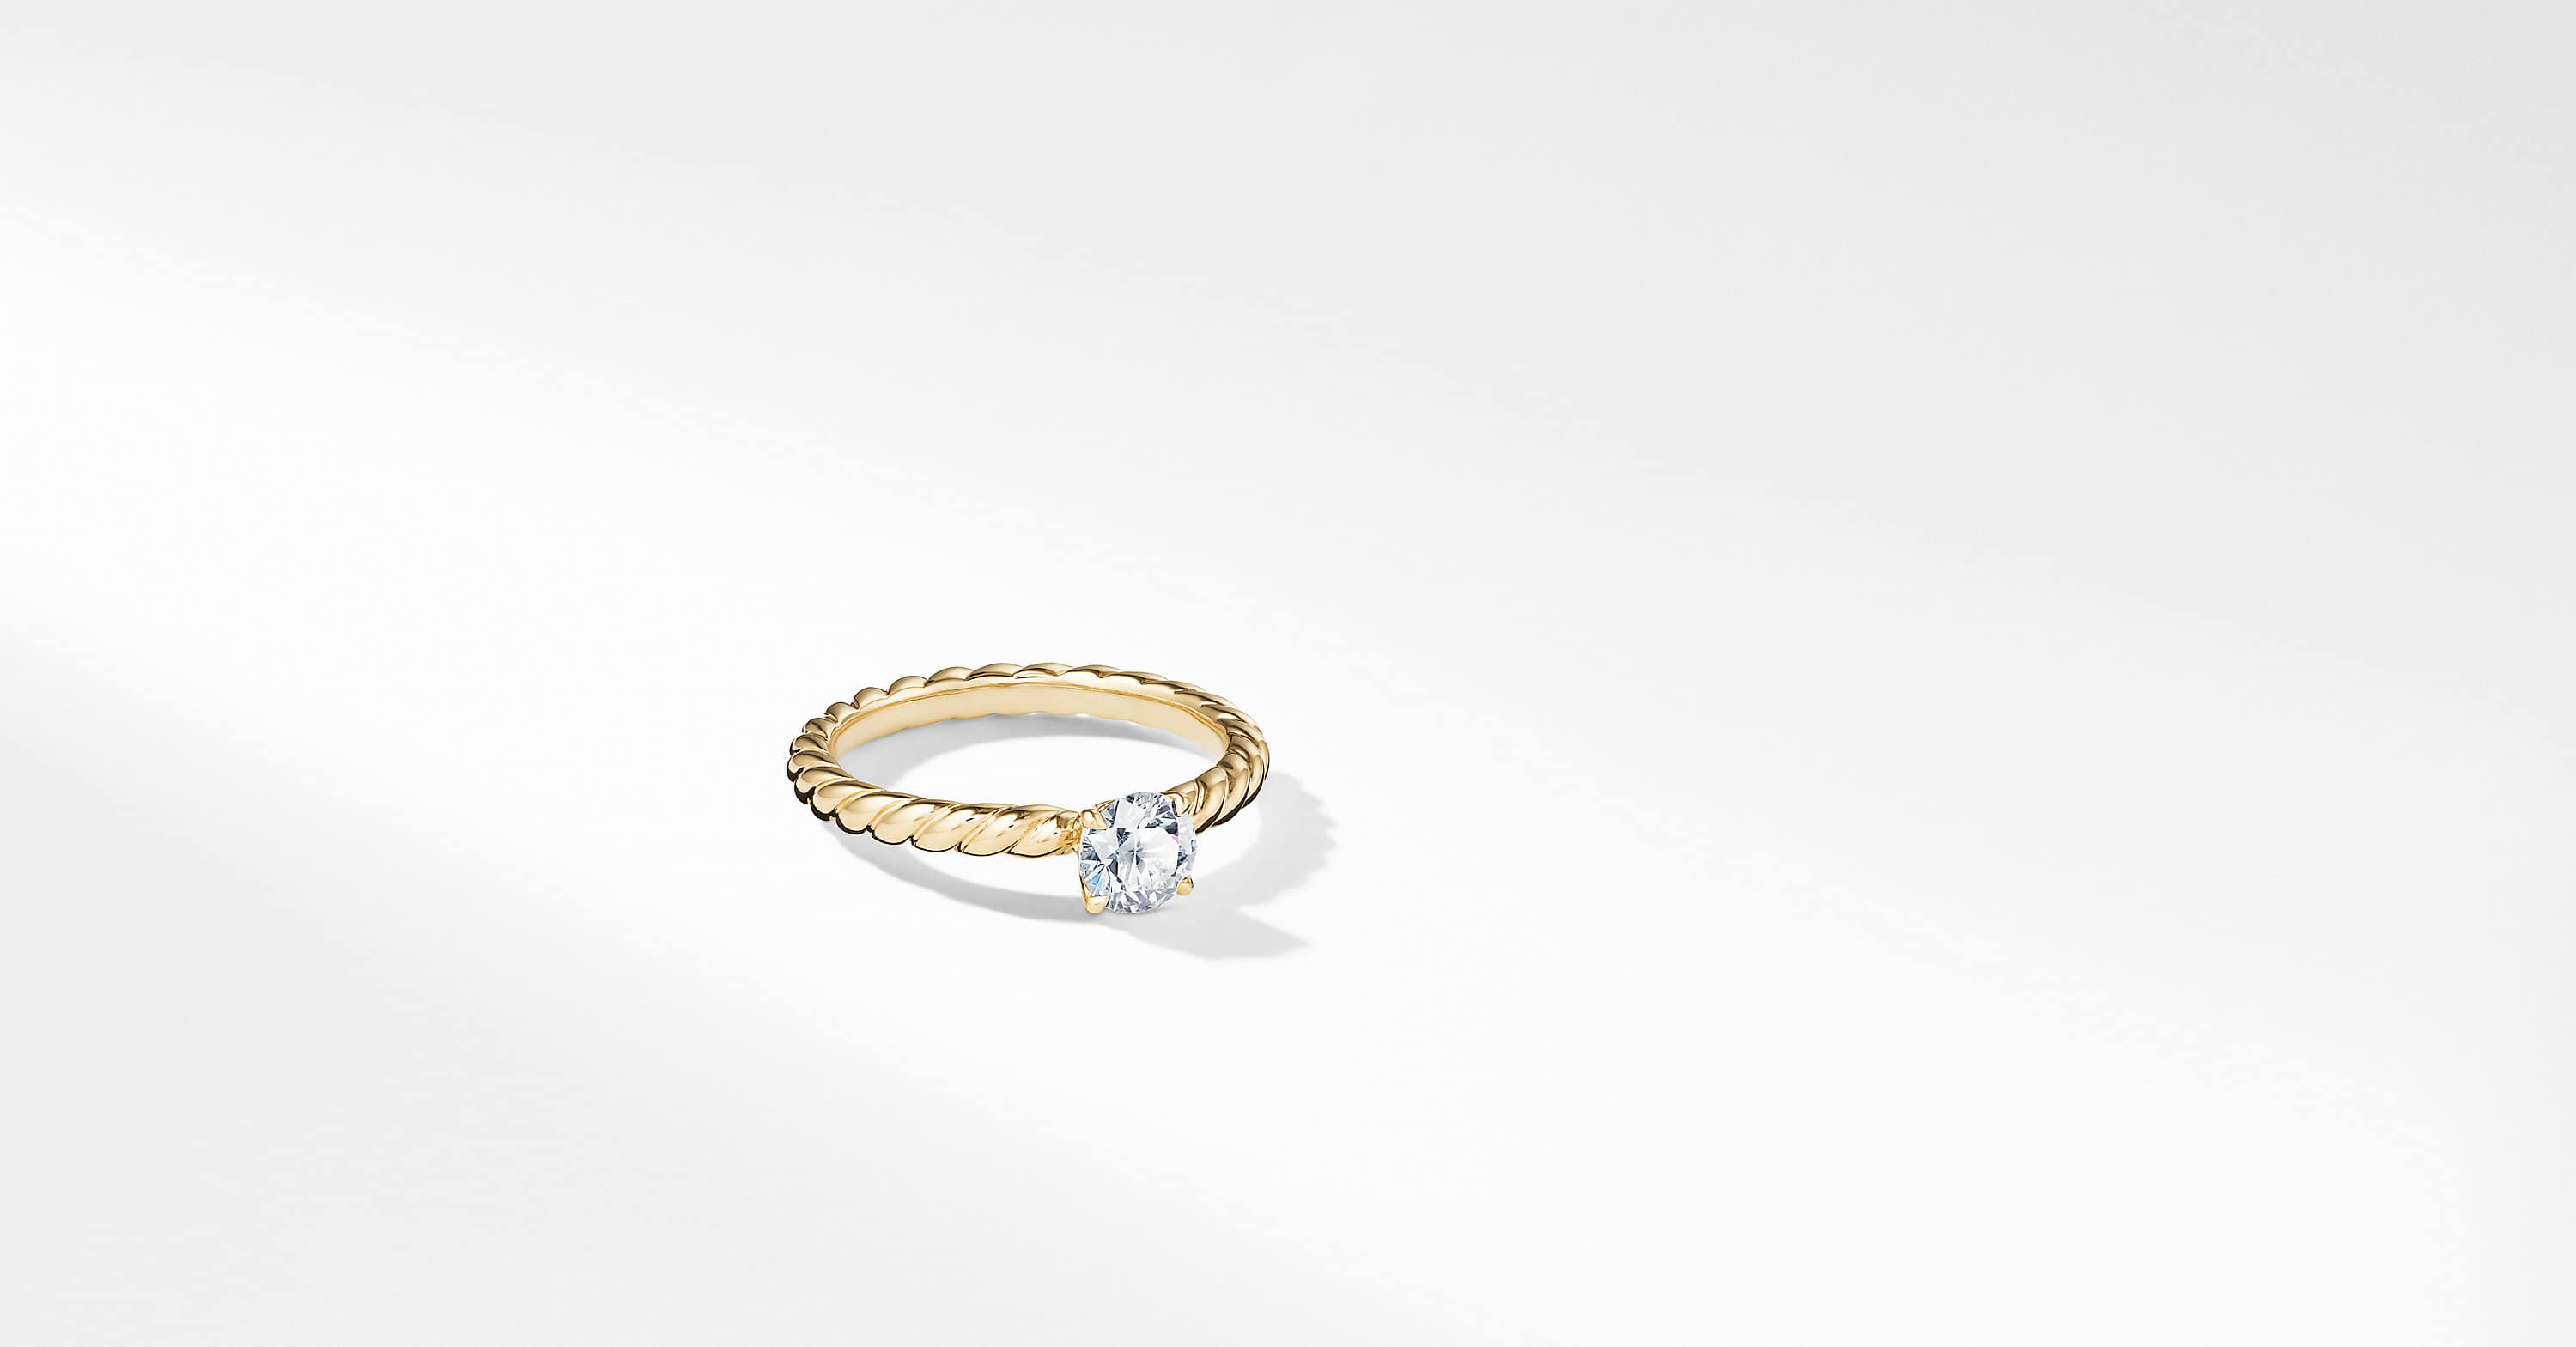 DY Unity Petite Cable Engagement Ring in 18K Gold, Round